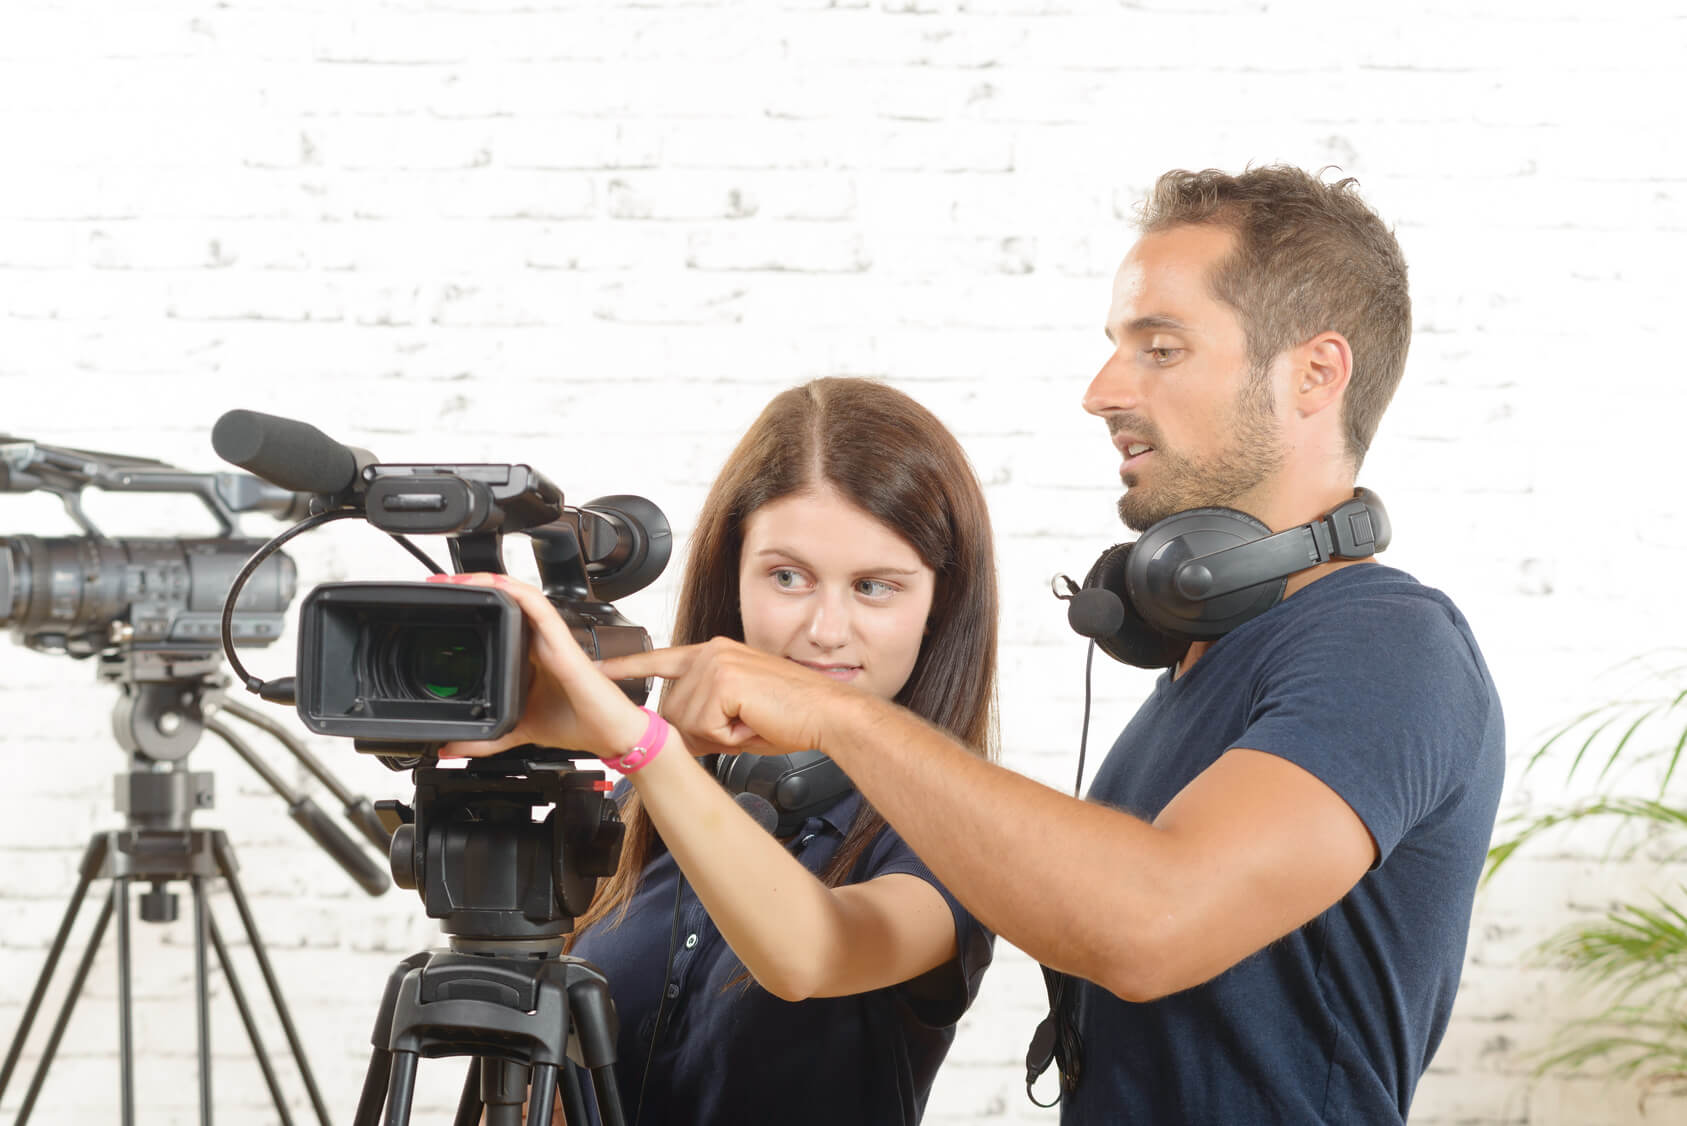 Lights, Green Screen, Camera, etc. - 5 Common Mistakes in Morning Announcements © Fotolia / philipimage